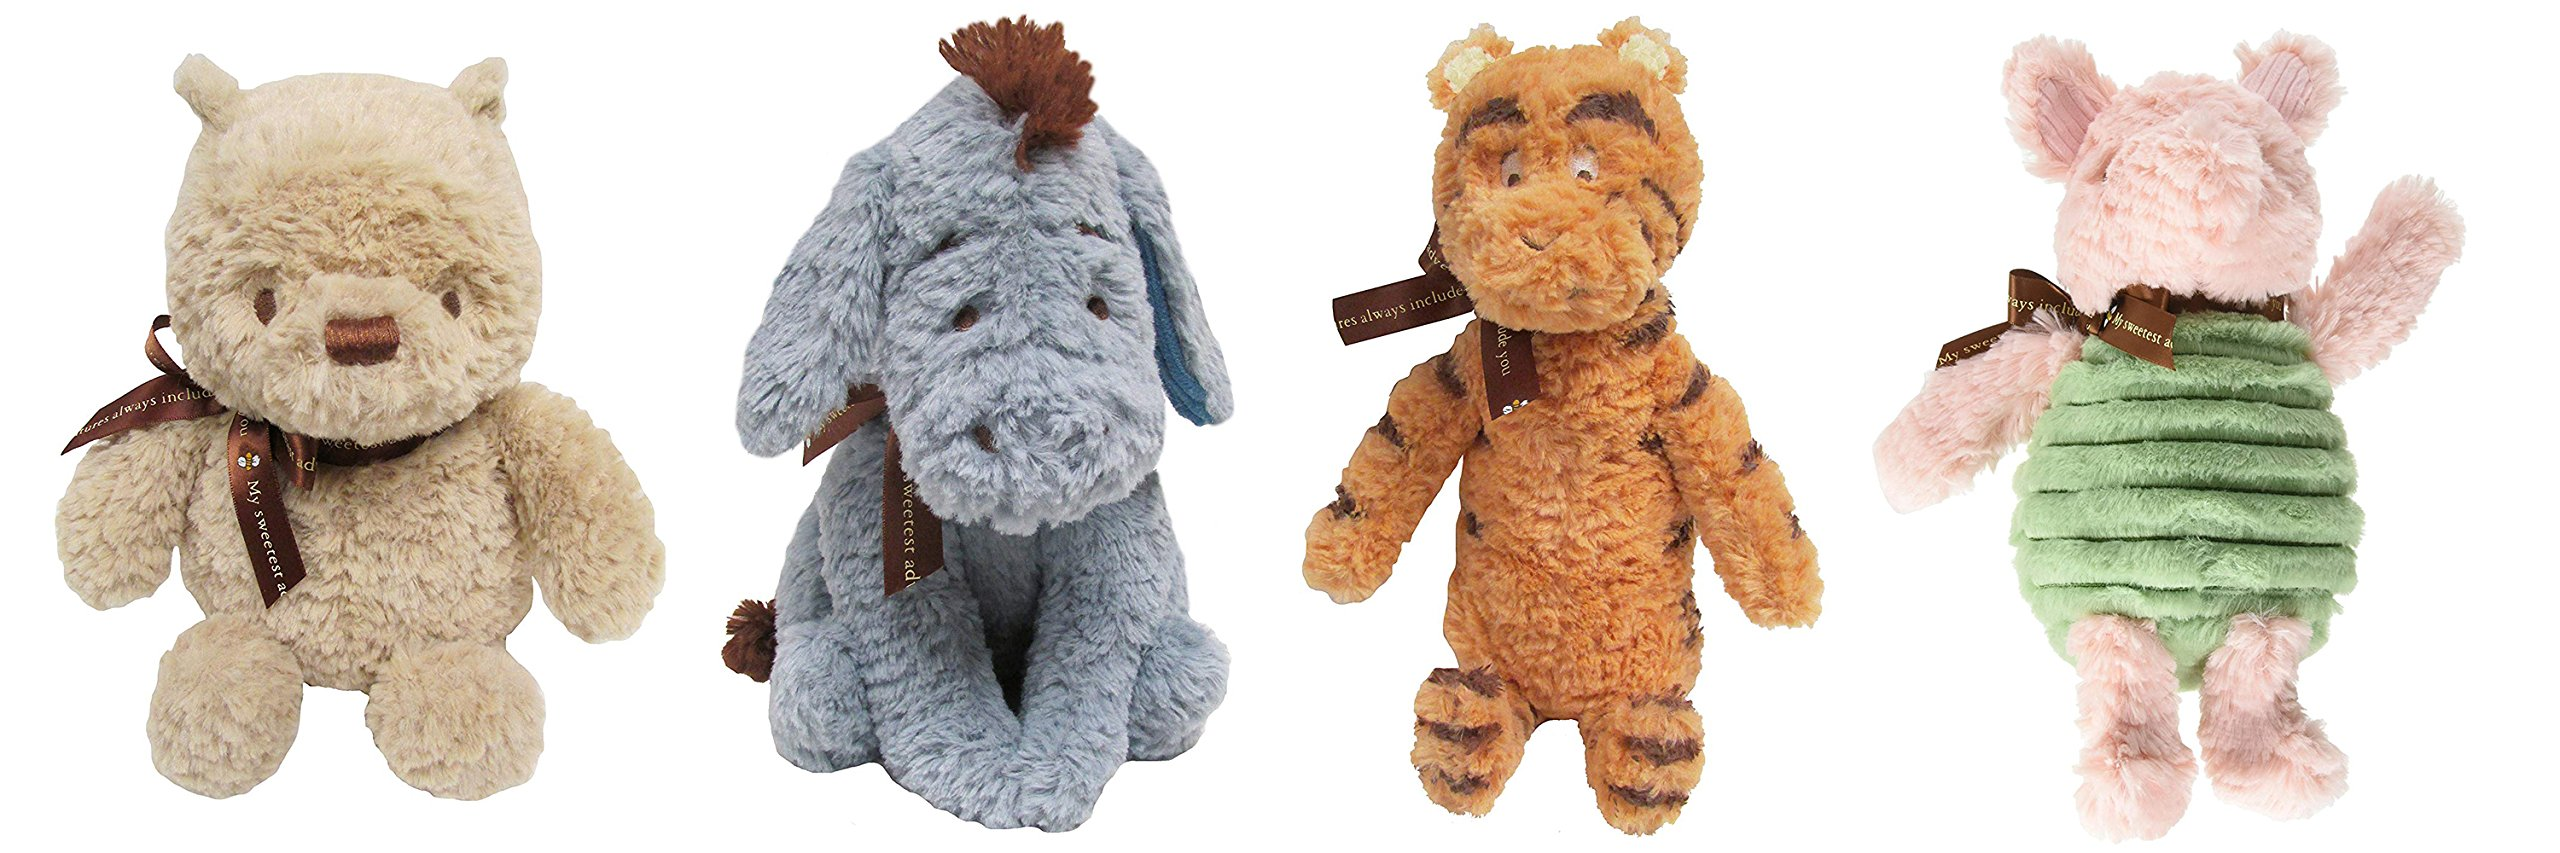 Kids Preferred Classic Winnie The Pooh Set of 4 - Pooh, Piglet, Tigger and Eeyore by KIDS PREFERRED